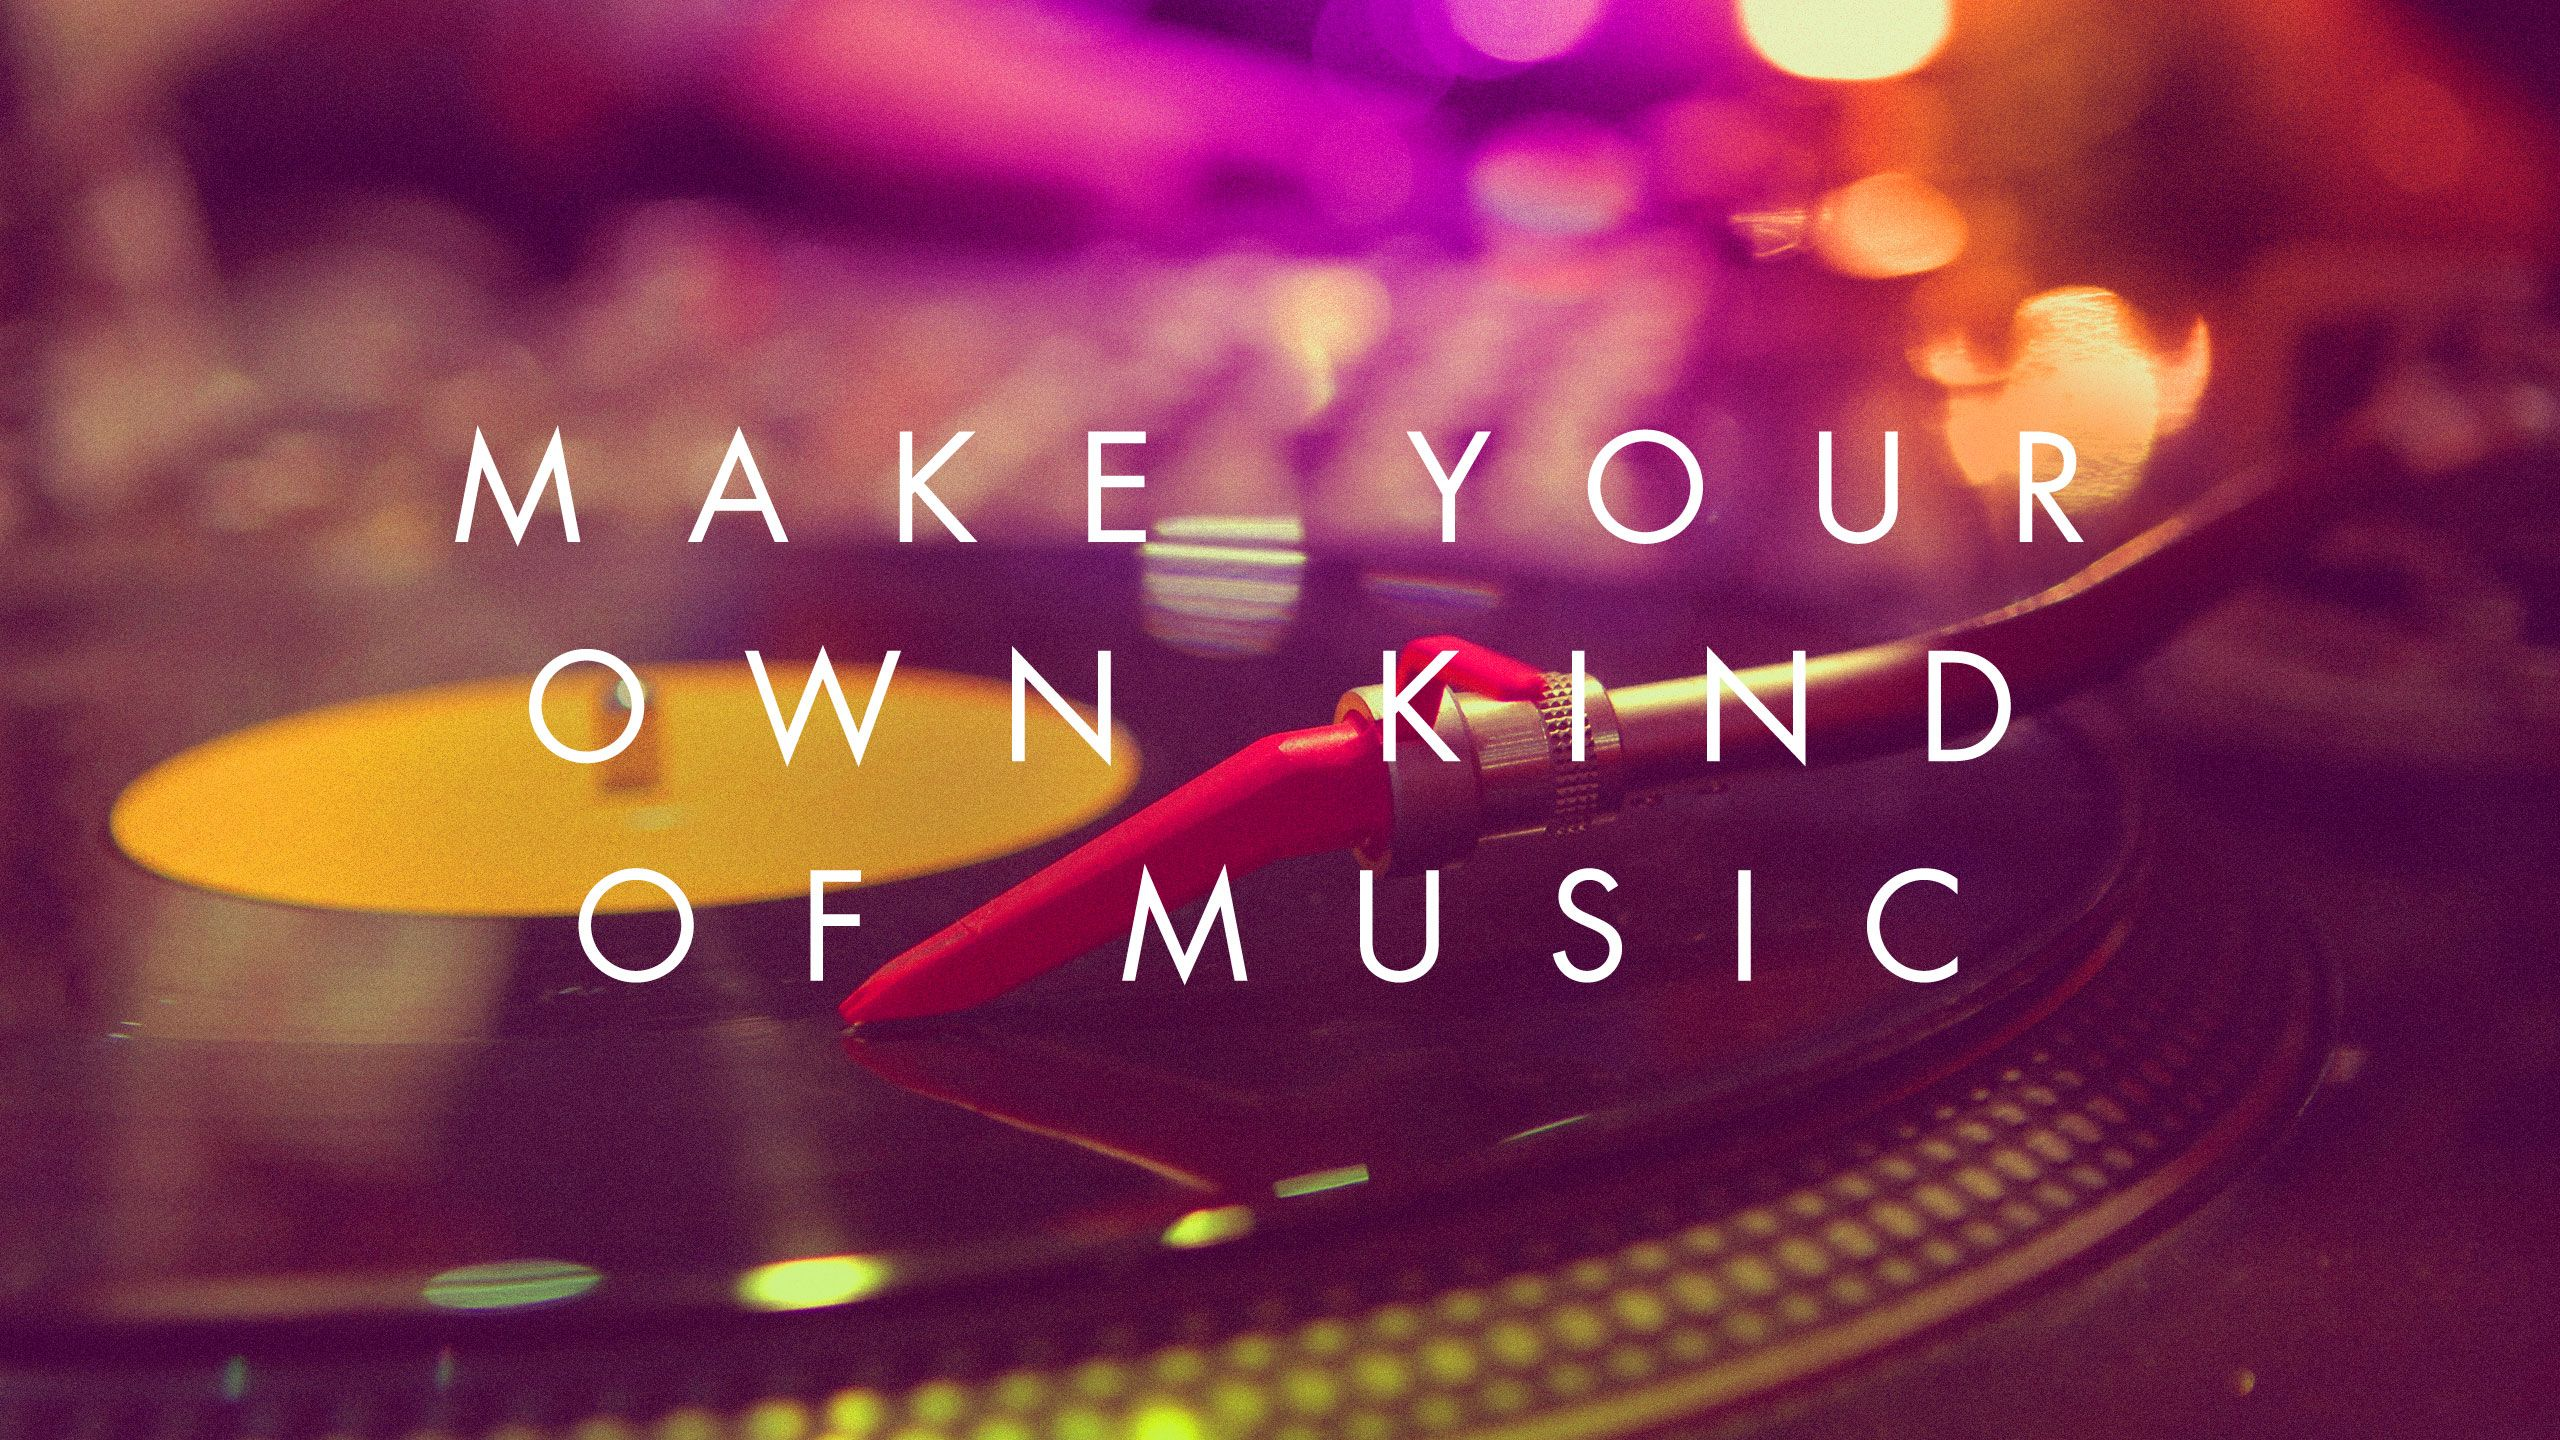 make-your-own-kind-of-music-2560x1440.jpg (2560×1440)  Love Music  Pinteres...